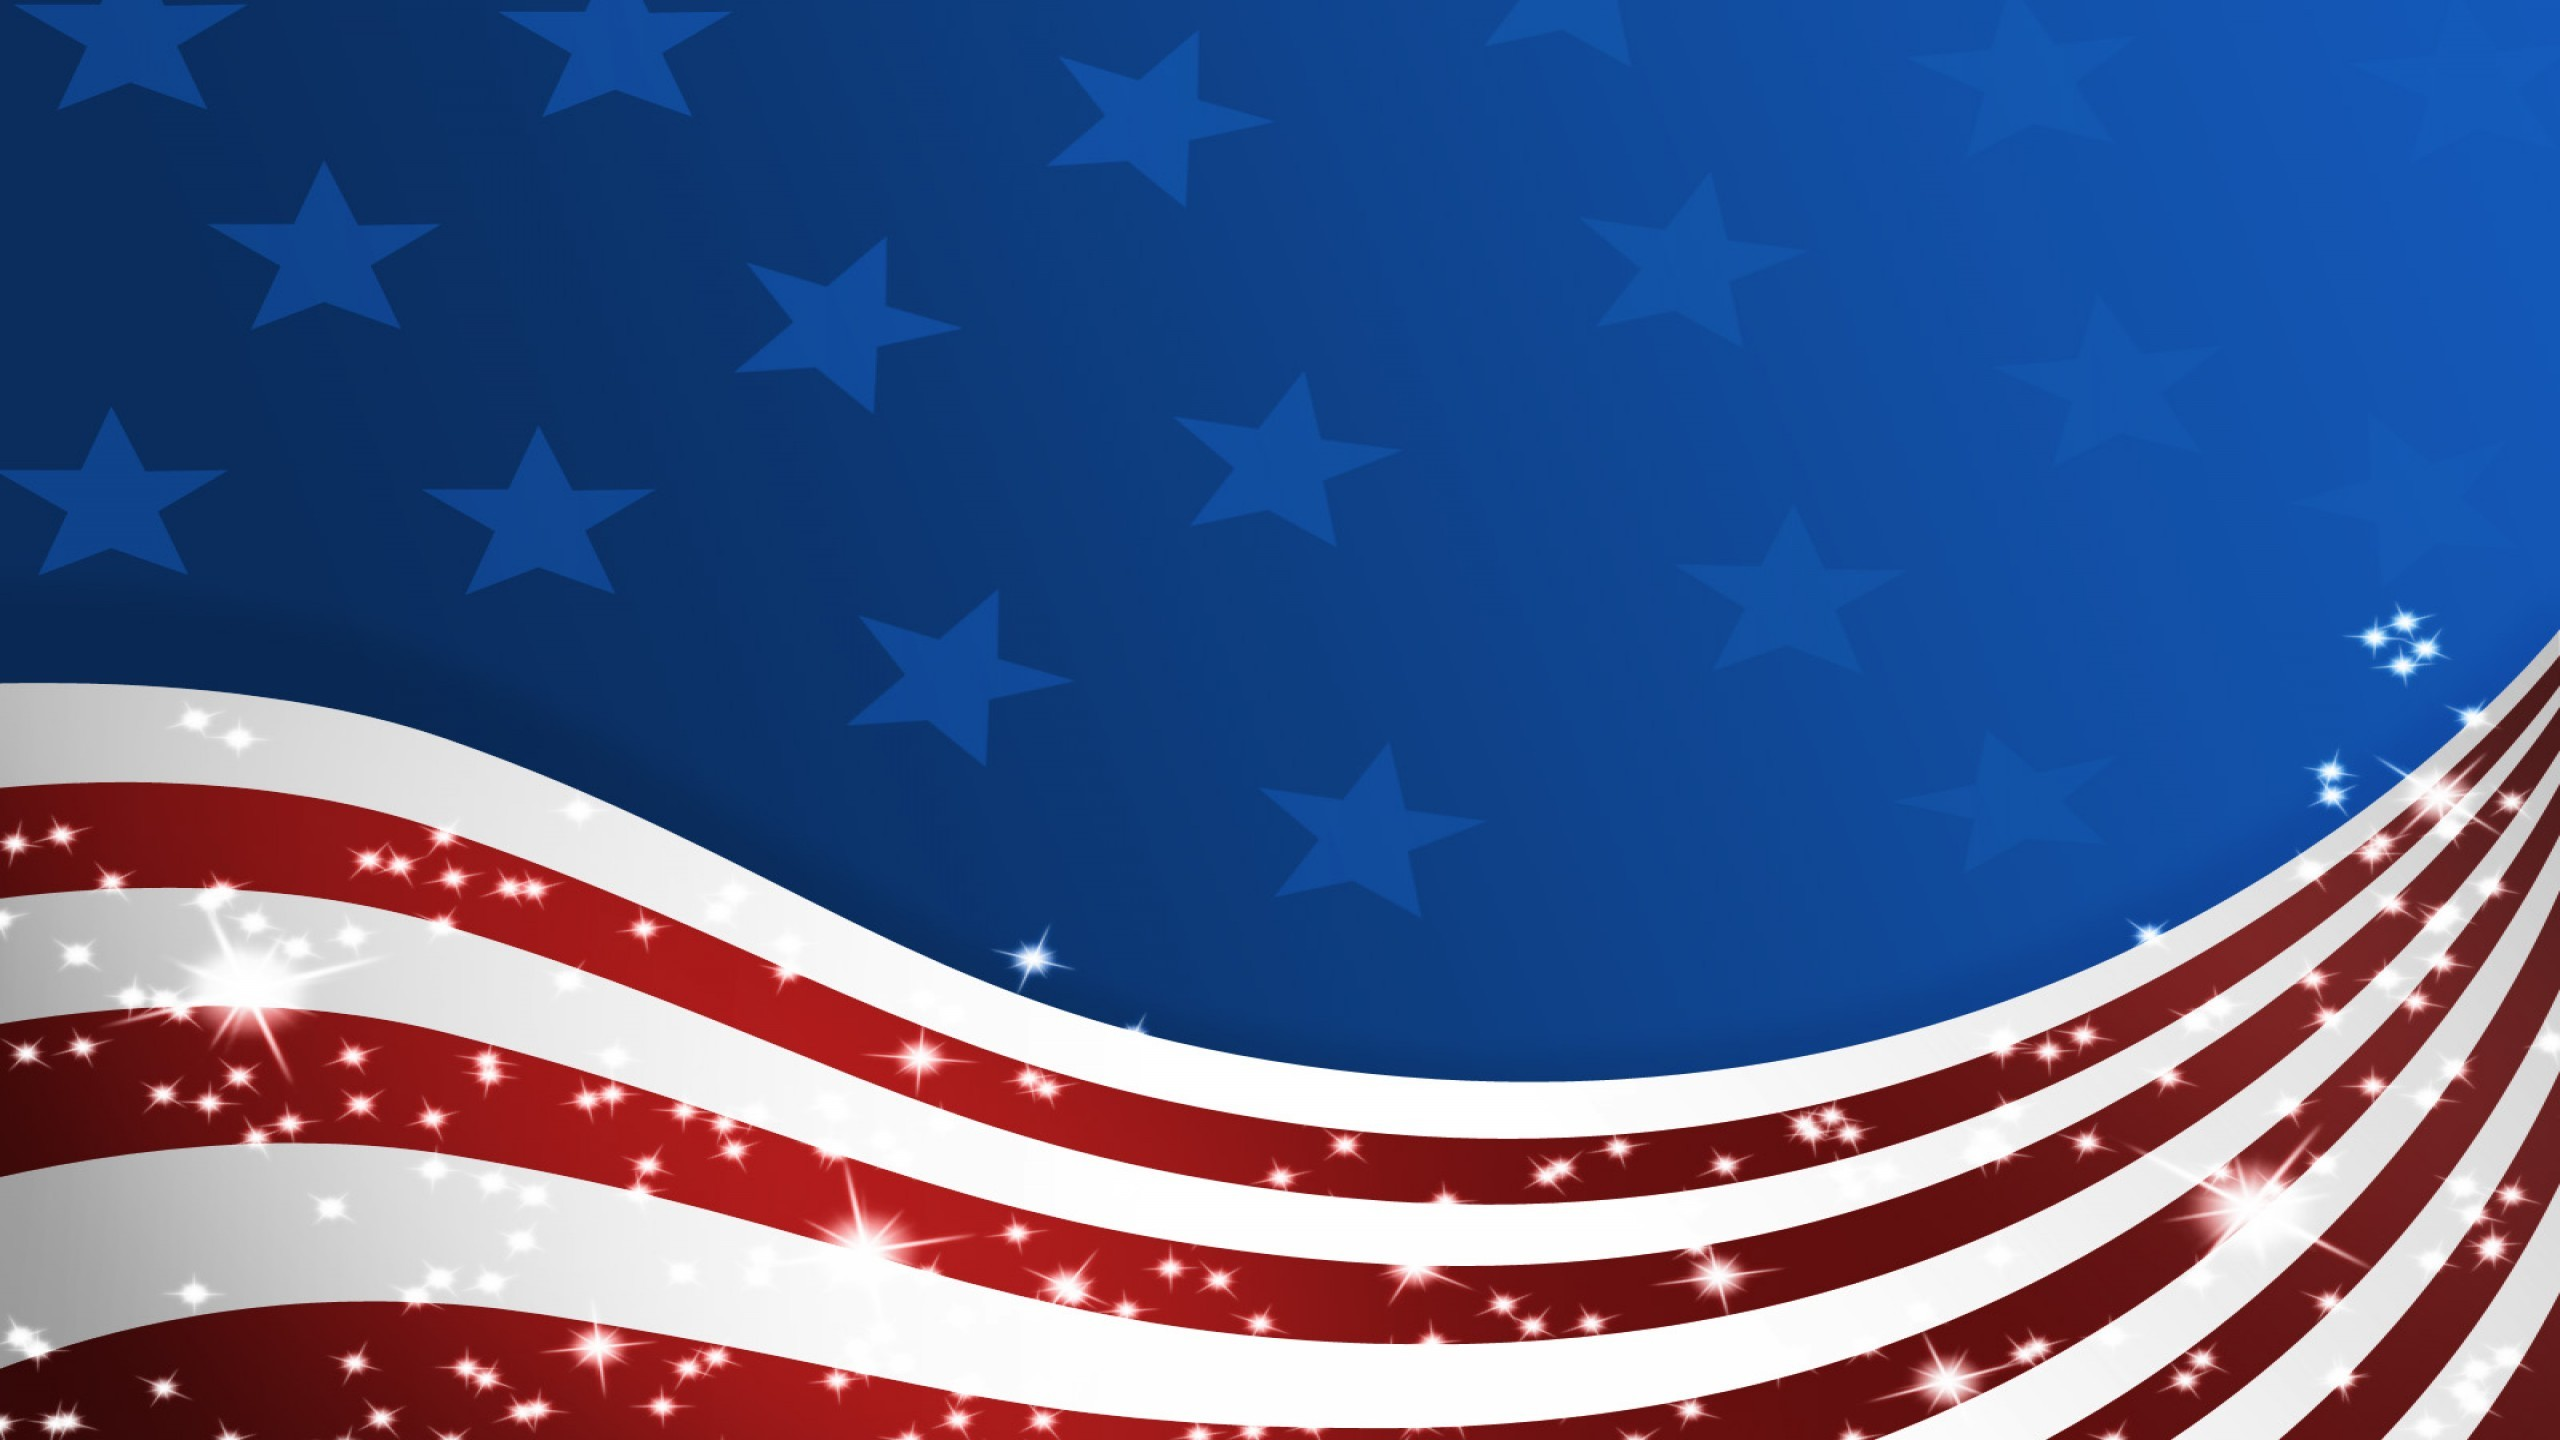 2560x1440 American Background Cliparts